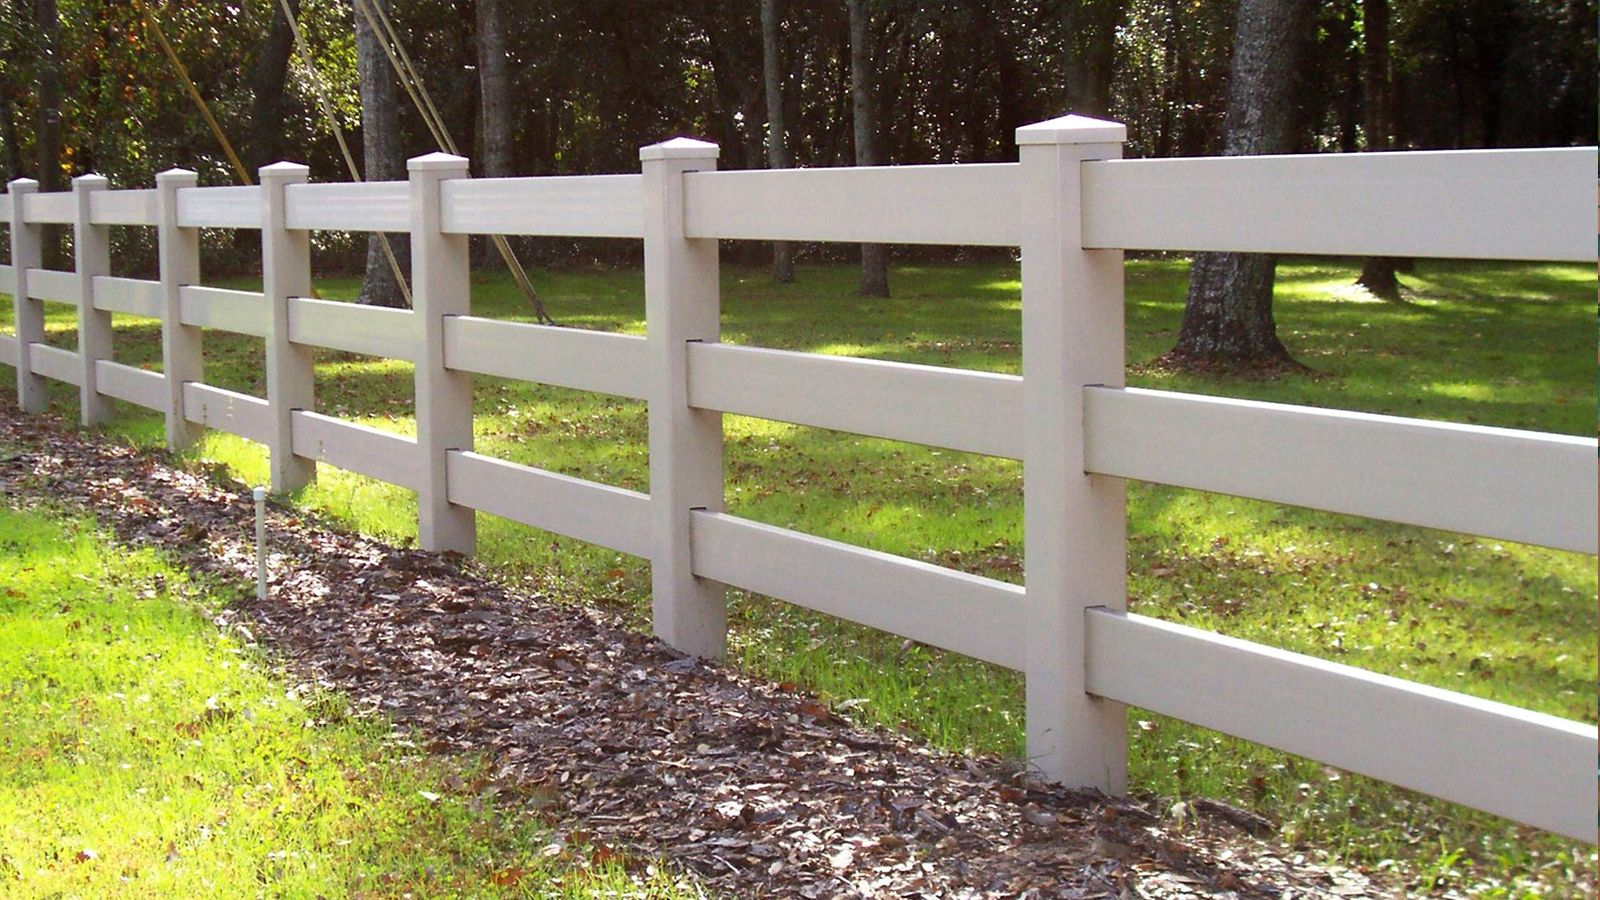 3 Rail White Vinyl Ranch Rail Fence By Mossy Oak Fence Located In Orlando And Melbourne Fl Fence Landscaping Backyard Fences Garden Fence